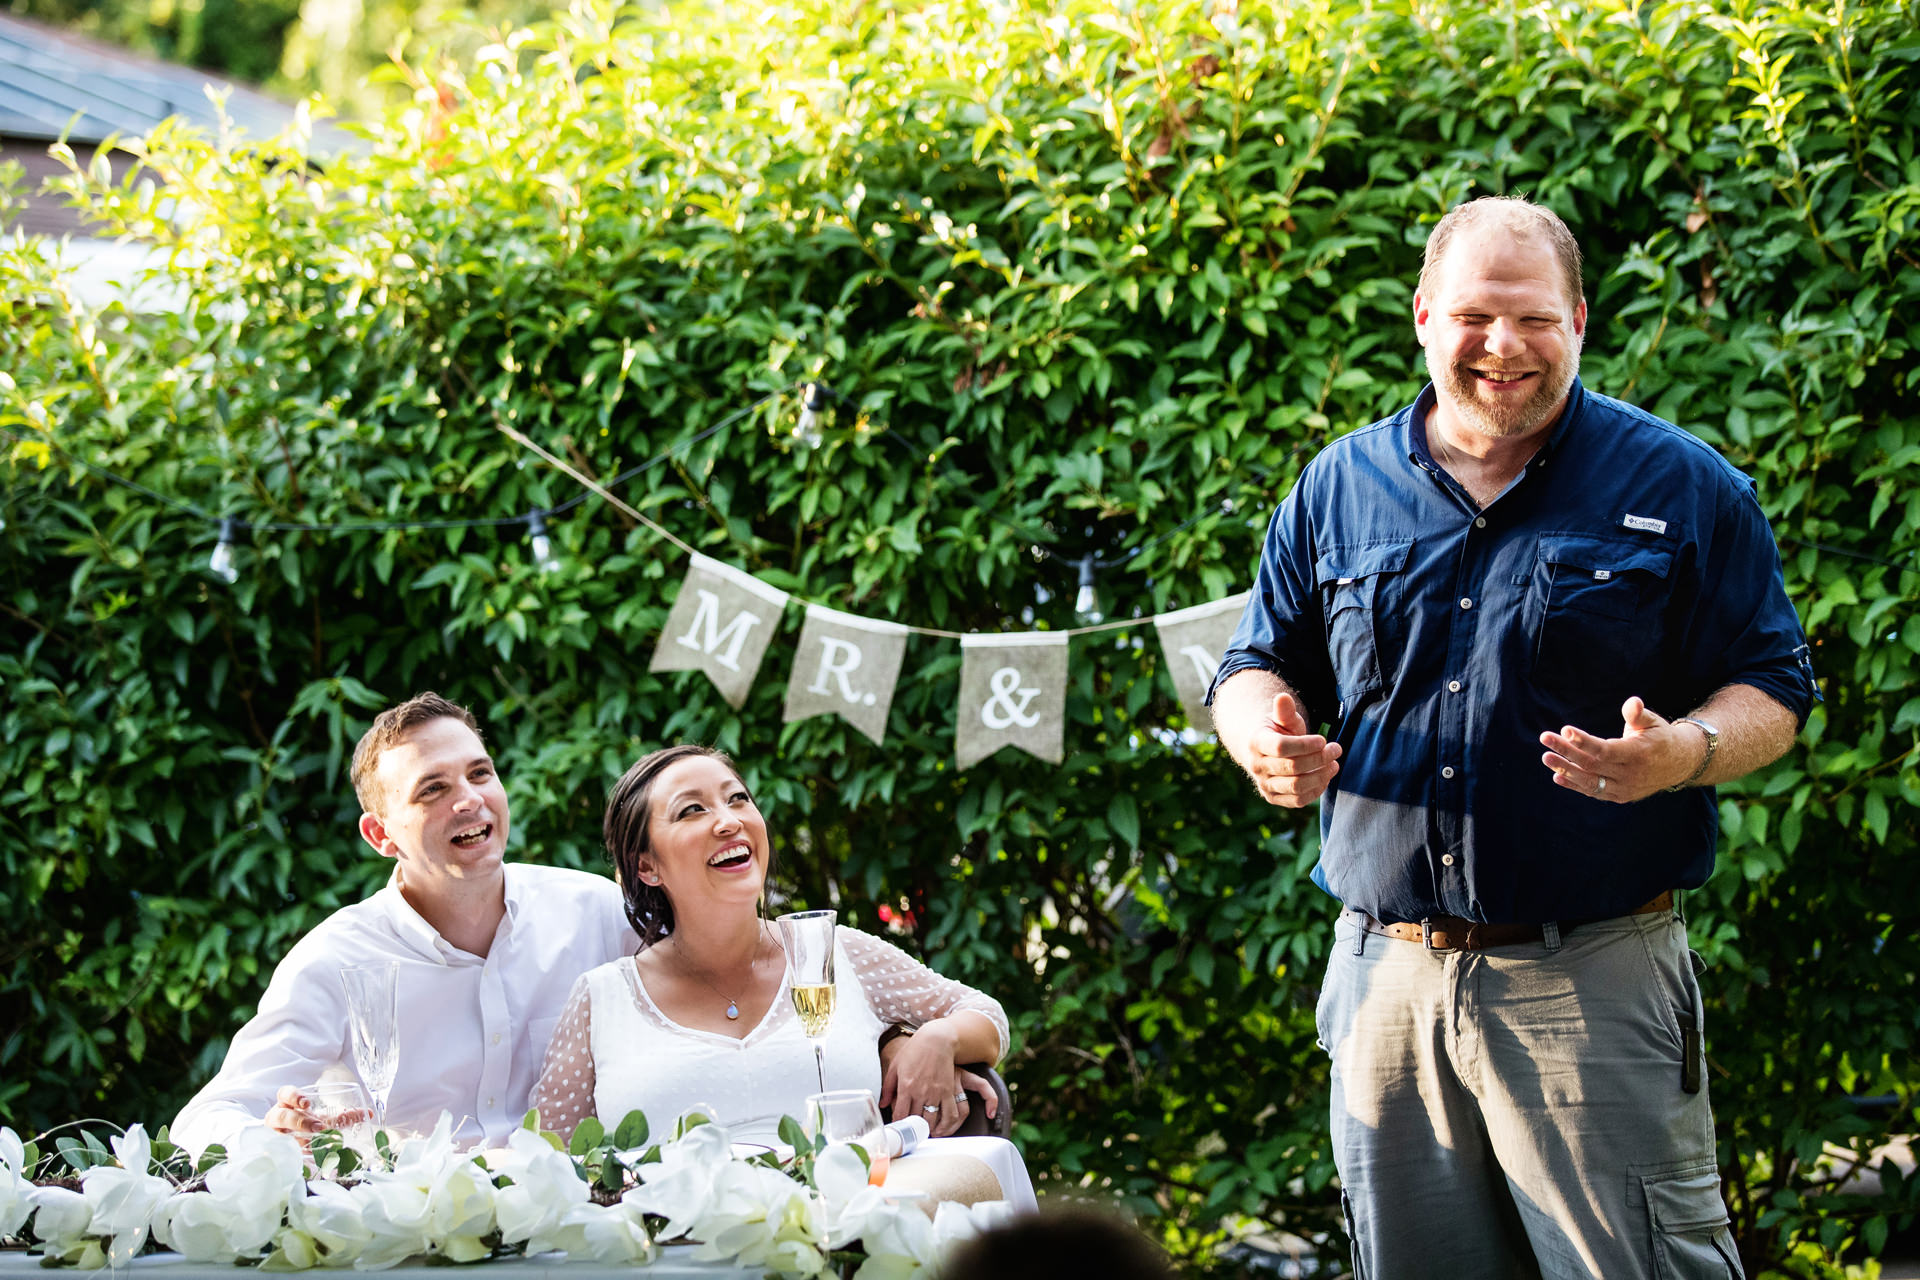 Elopement Wedding Images | The bride and groom erupt in laughter during a toast at their backyard wedding